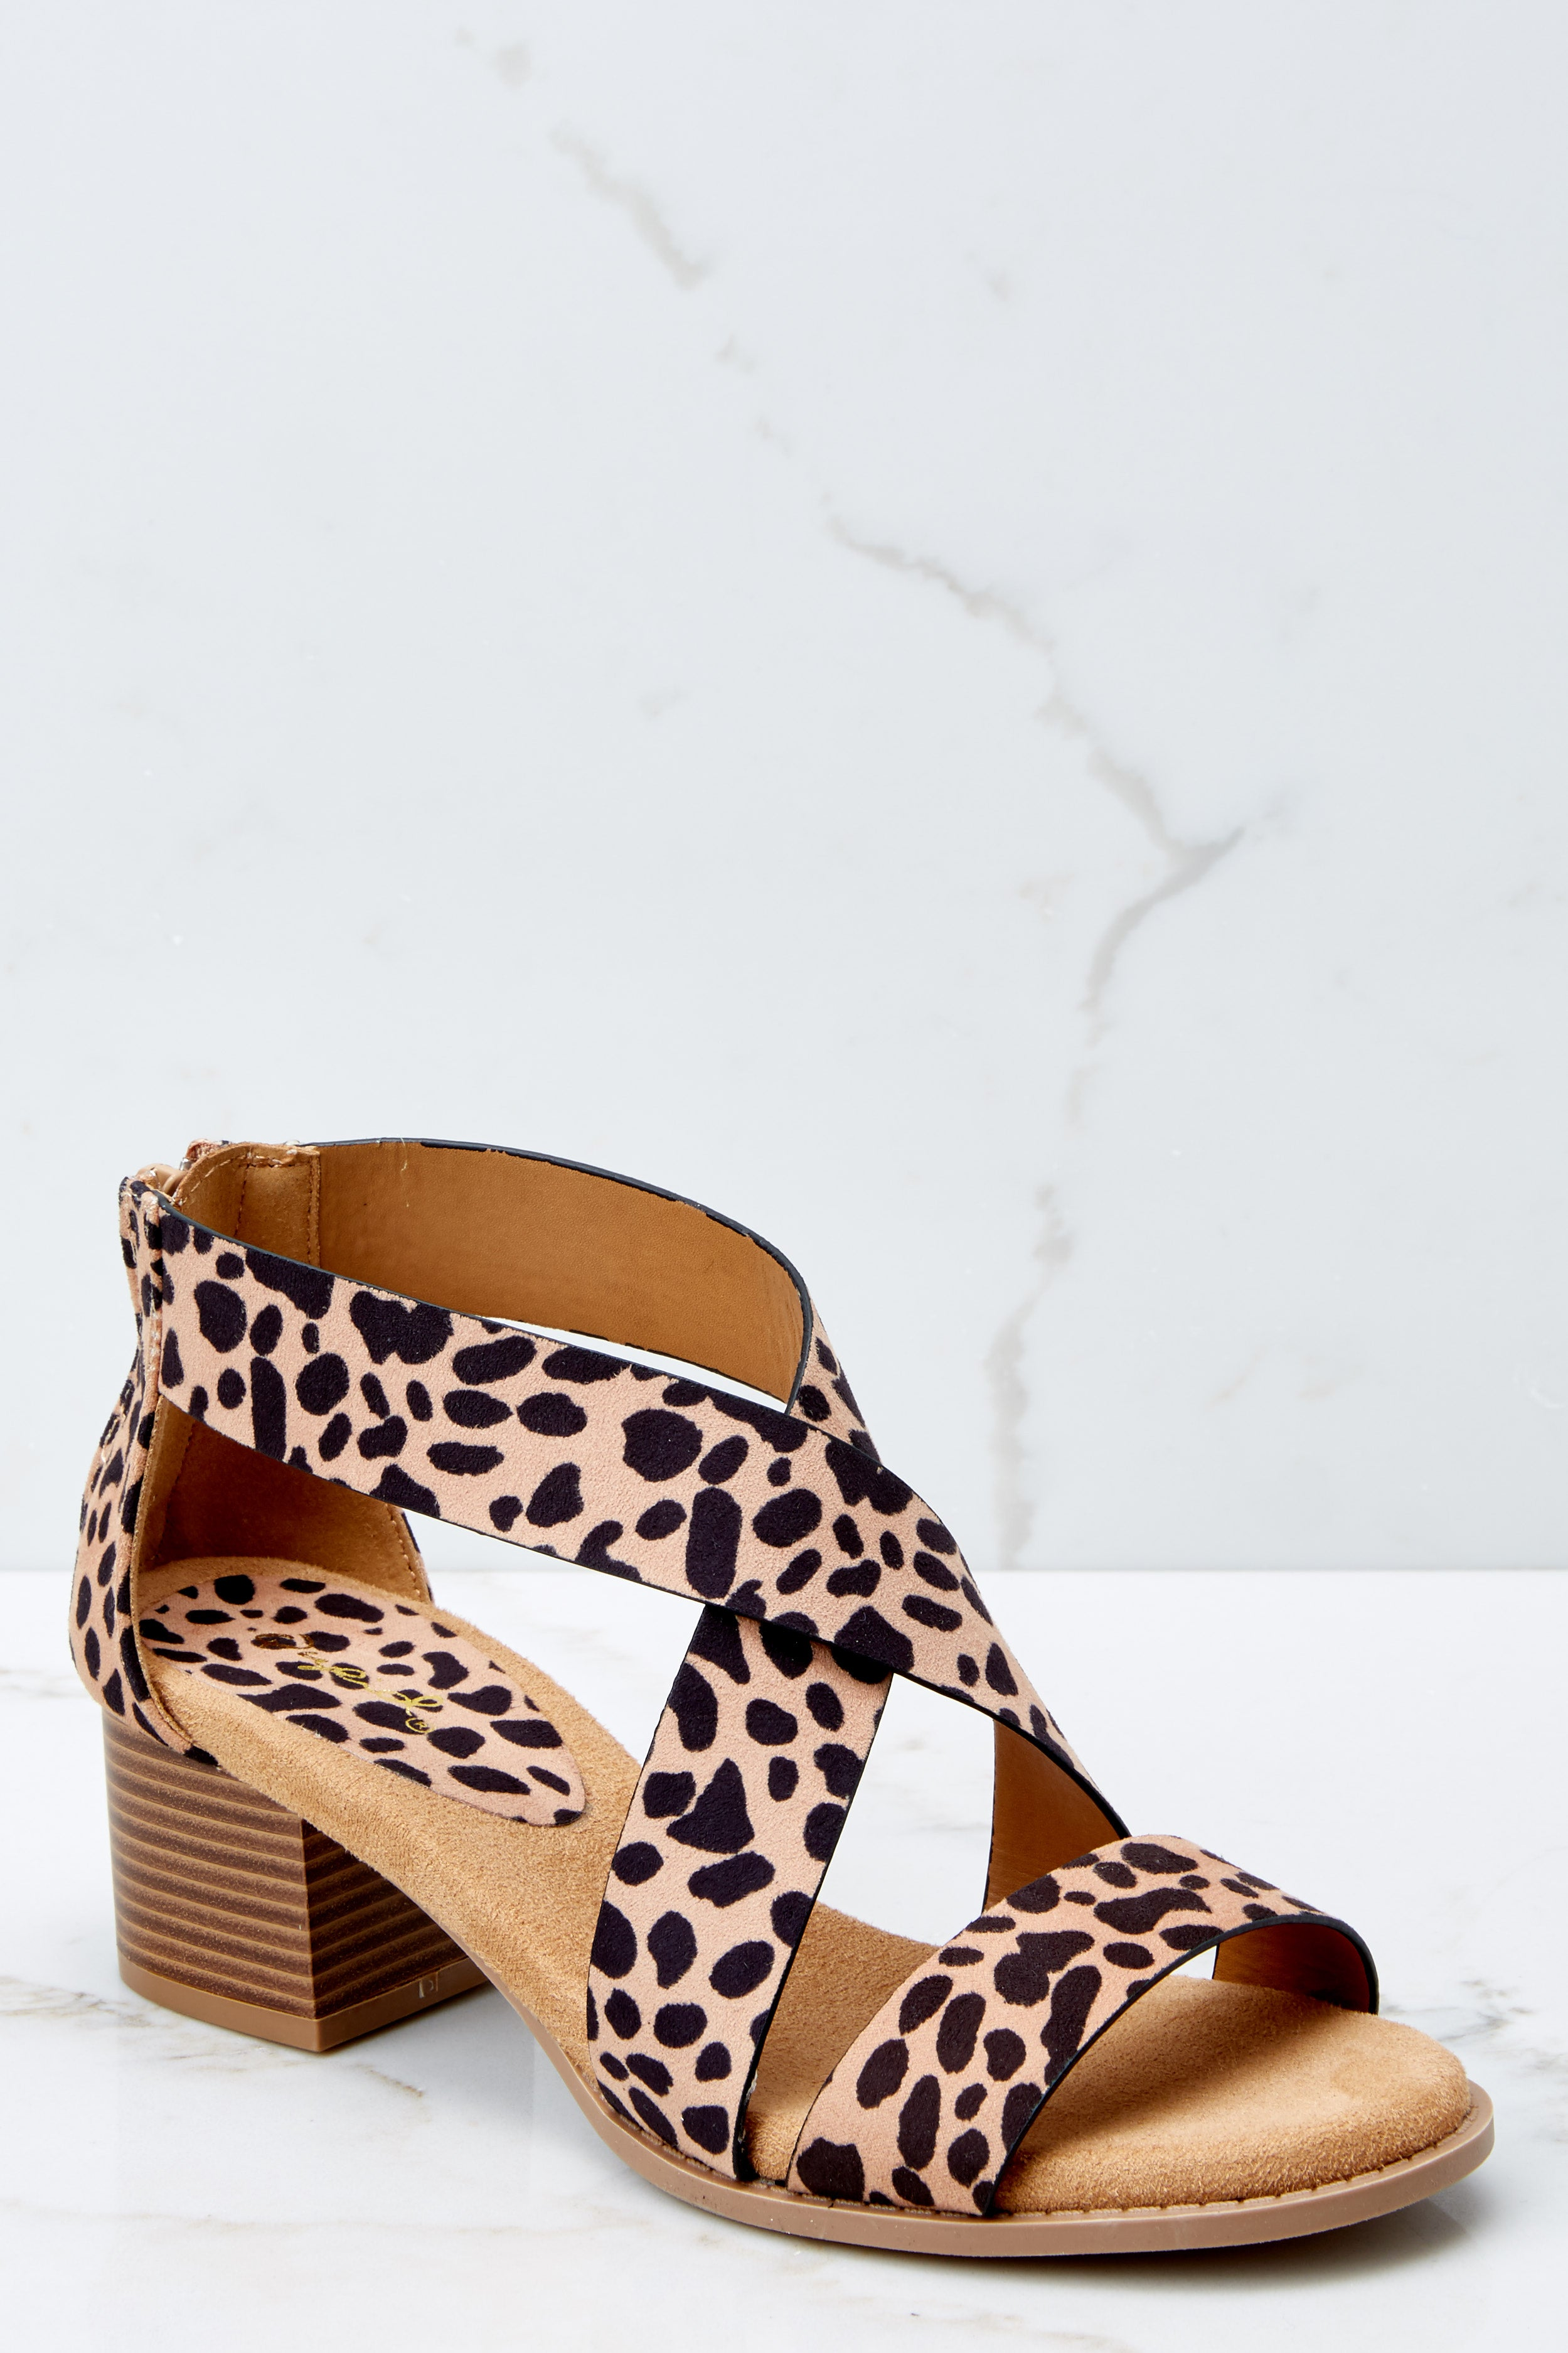 a902011a0d5 Trendy Leopard Print Heels - Strappy High Heel Sandals - Shoes - $32 ...